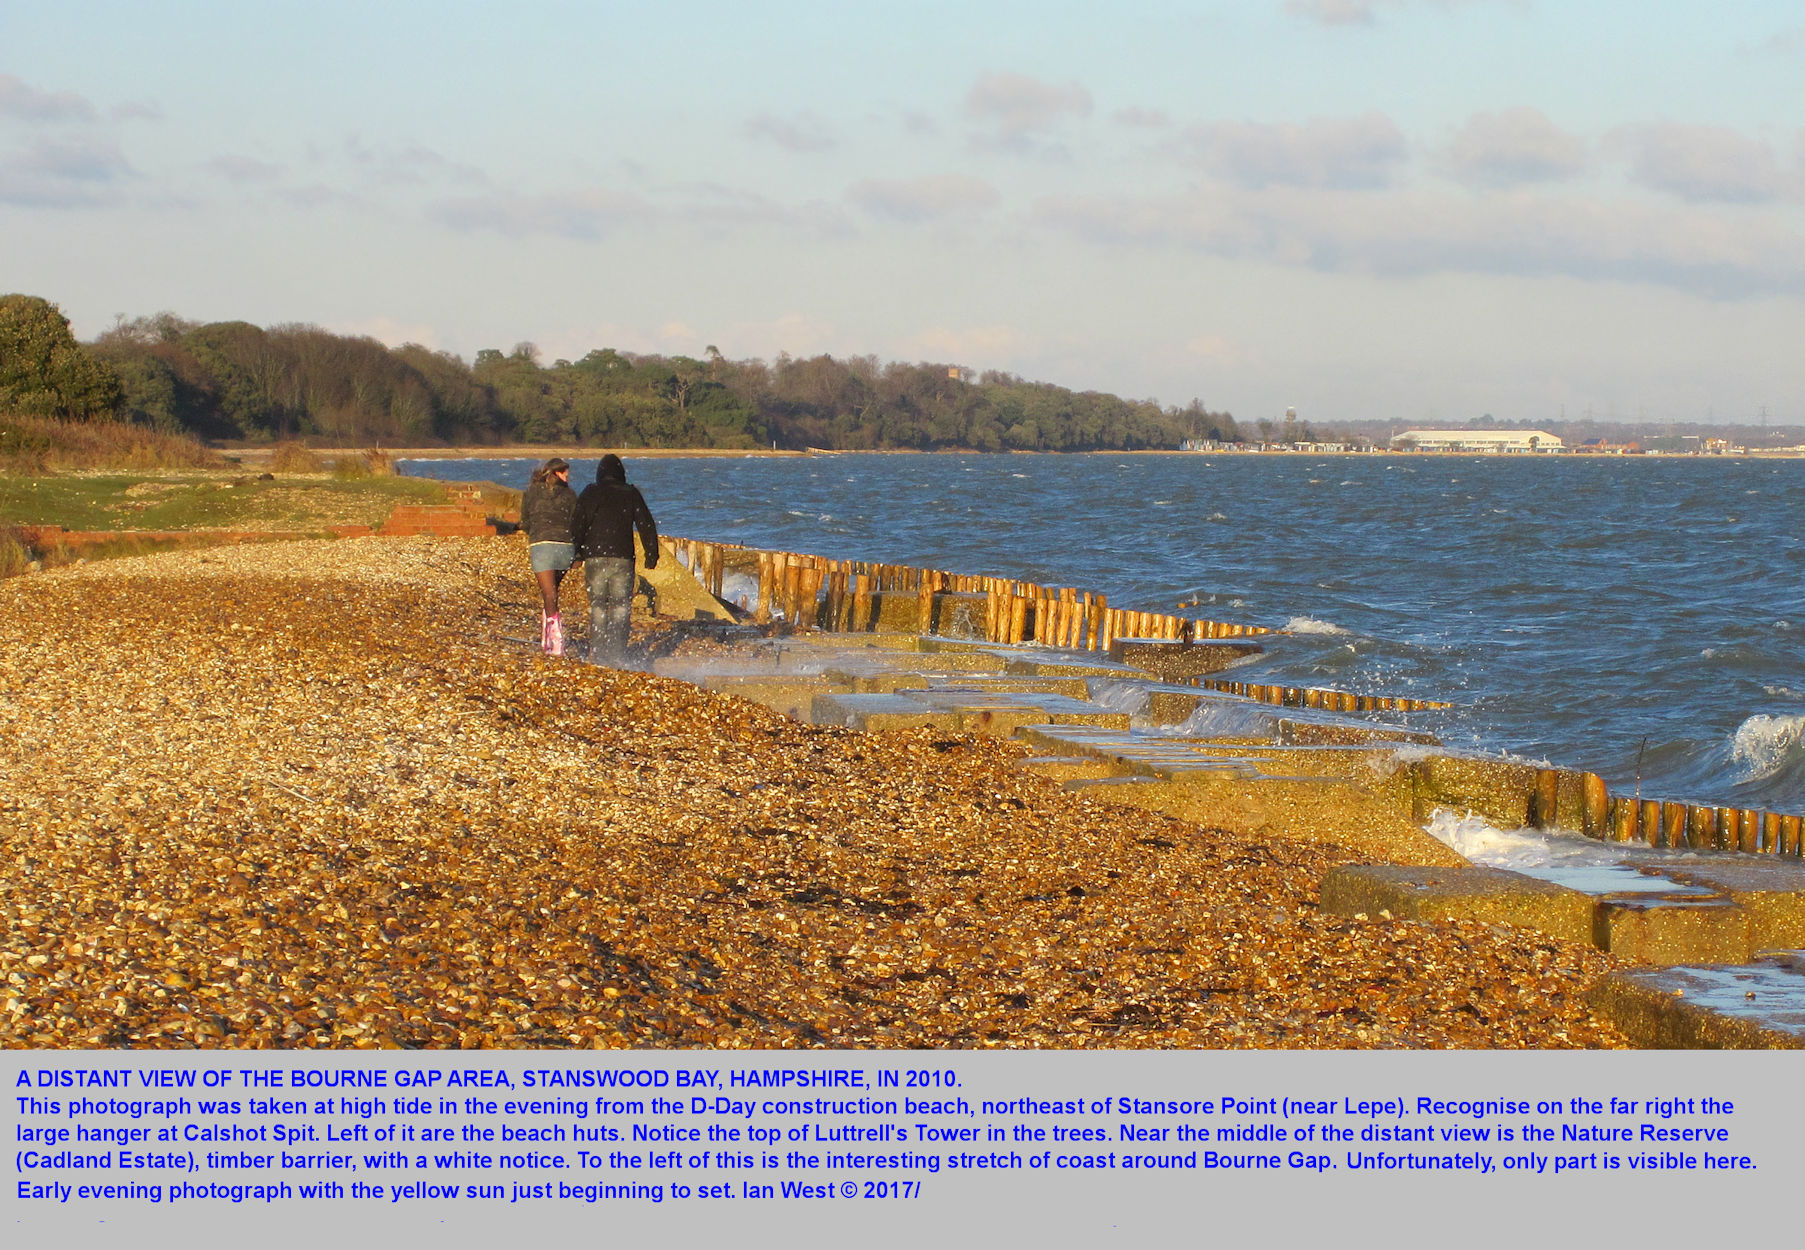 A view of the Bourne Gap coast of Stanswood Bay, in 2010, as seen from the D-Day construction area near Stansore Point, Lepe Beach area